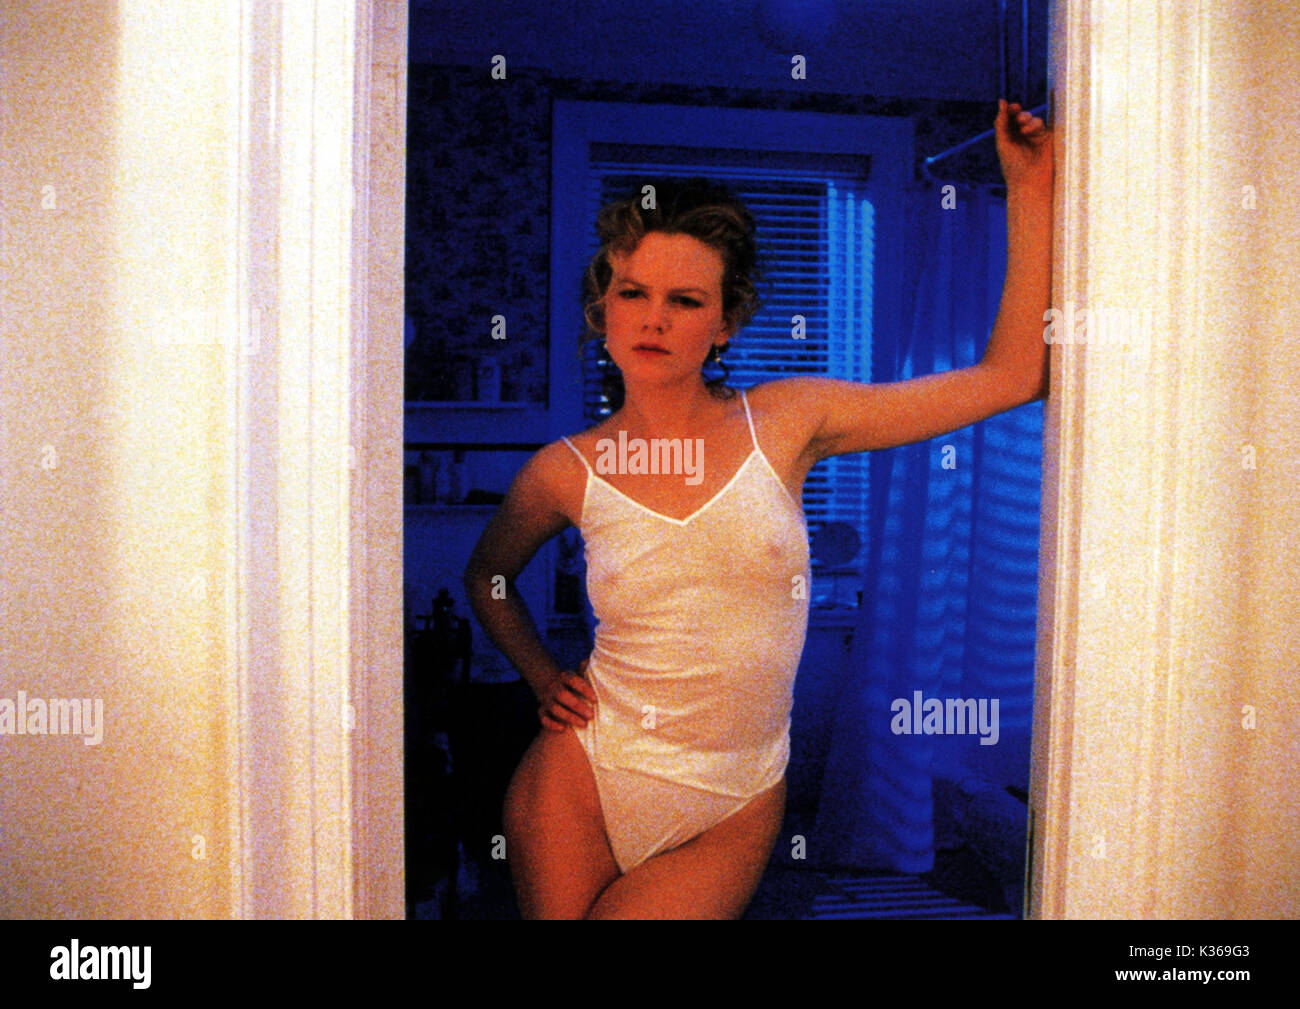 EYES WIDE SHUT NICOLE KIDMAN     Date: 1999 - Stock Image